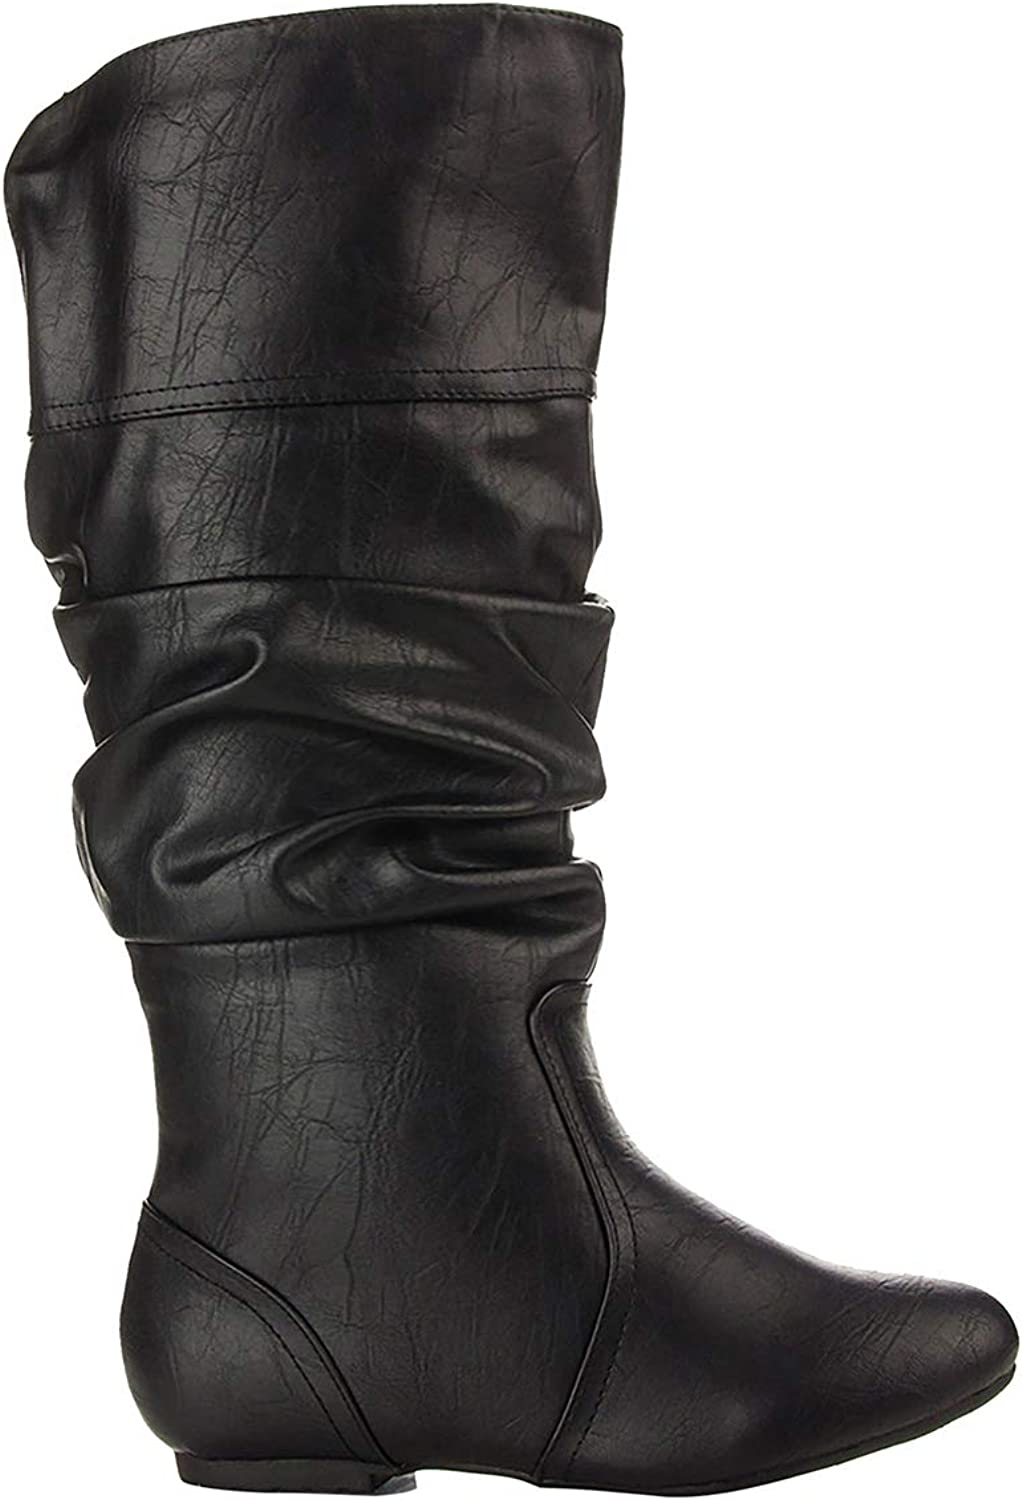 BIGTREE PU Leather Boots for Women Knee High Criss Cross Buckle Cowboy Boots Winter